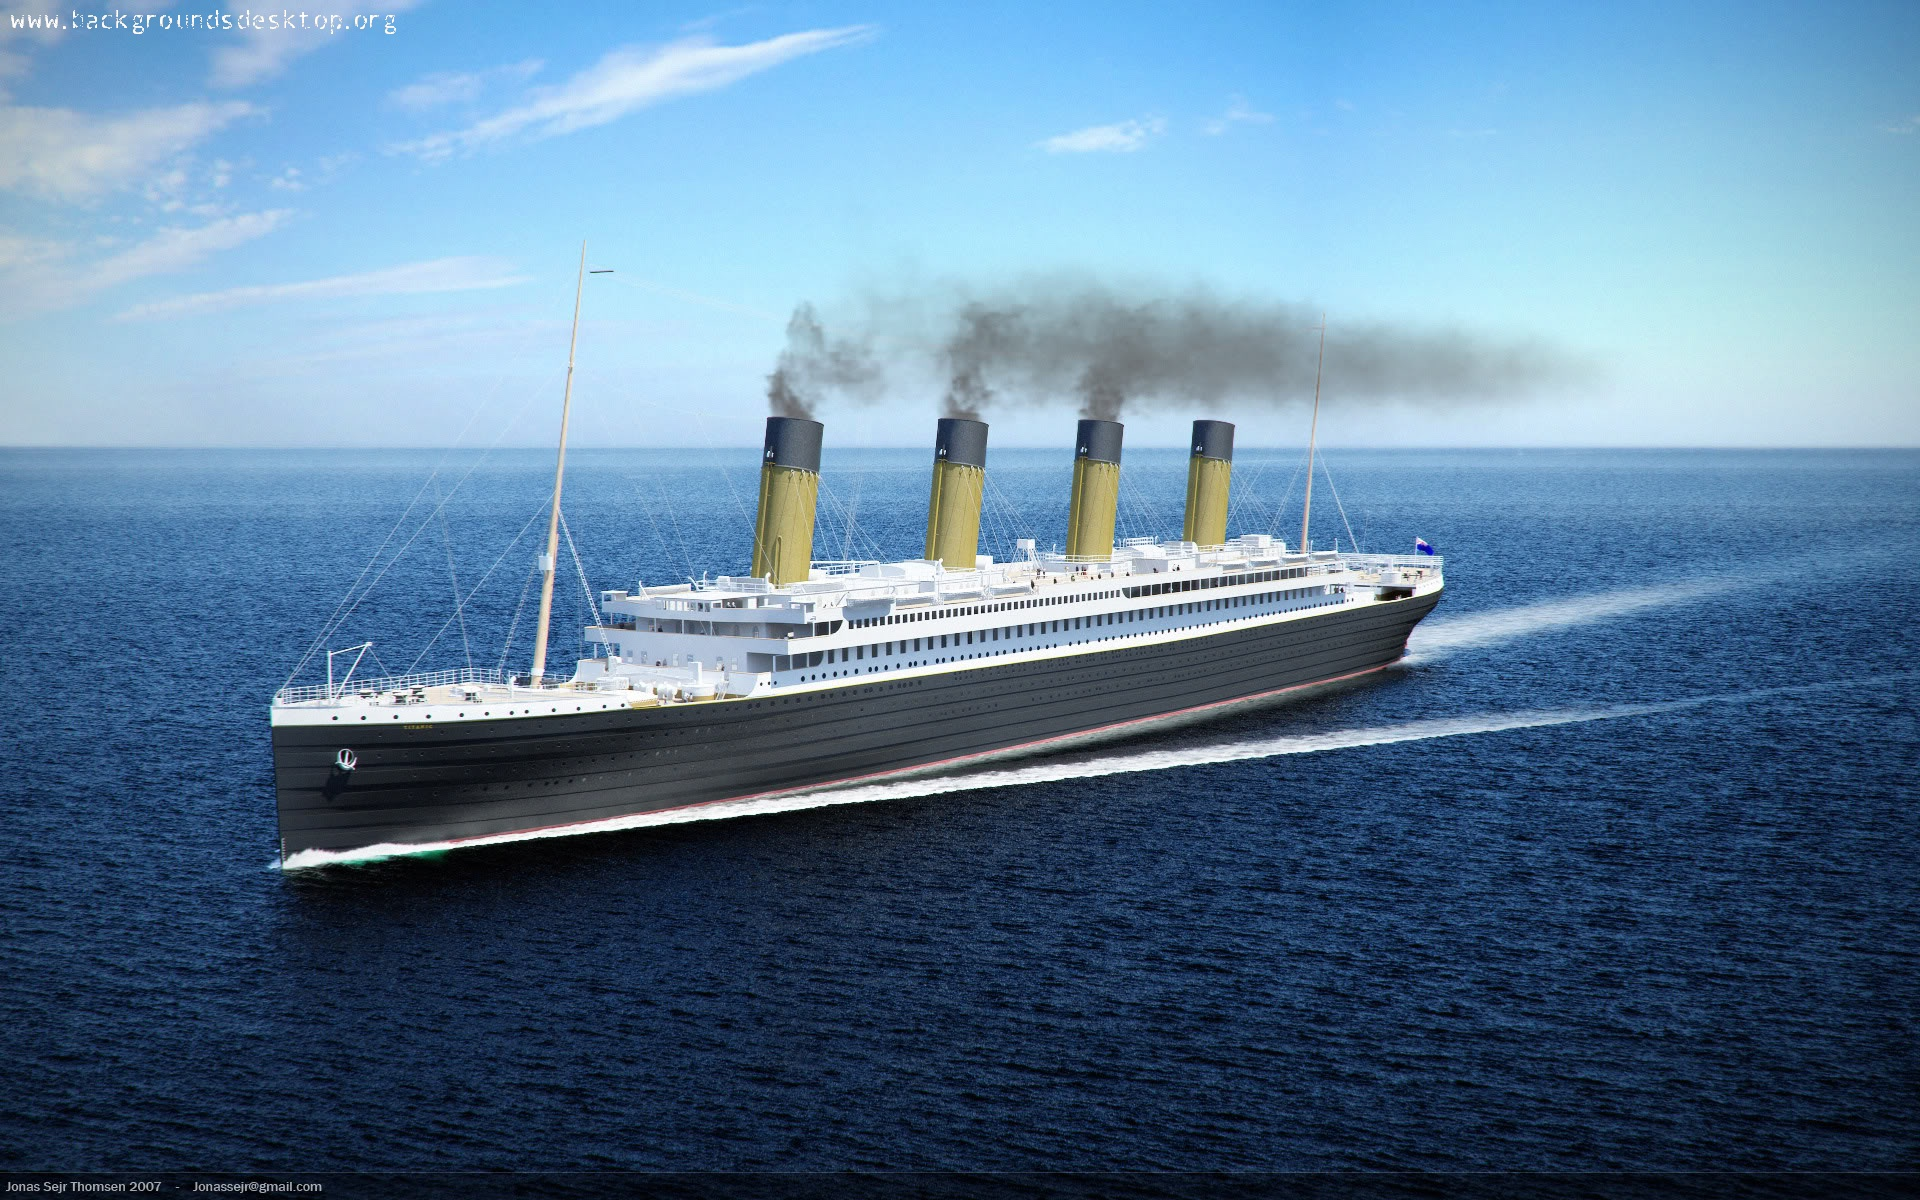 TITANIC Disaster Drama Romance Ship Boat Rq Wallpaper